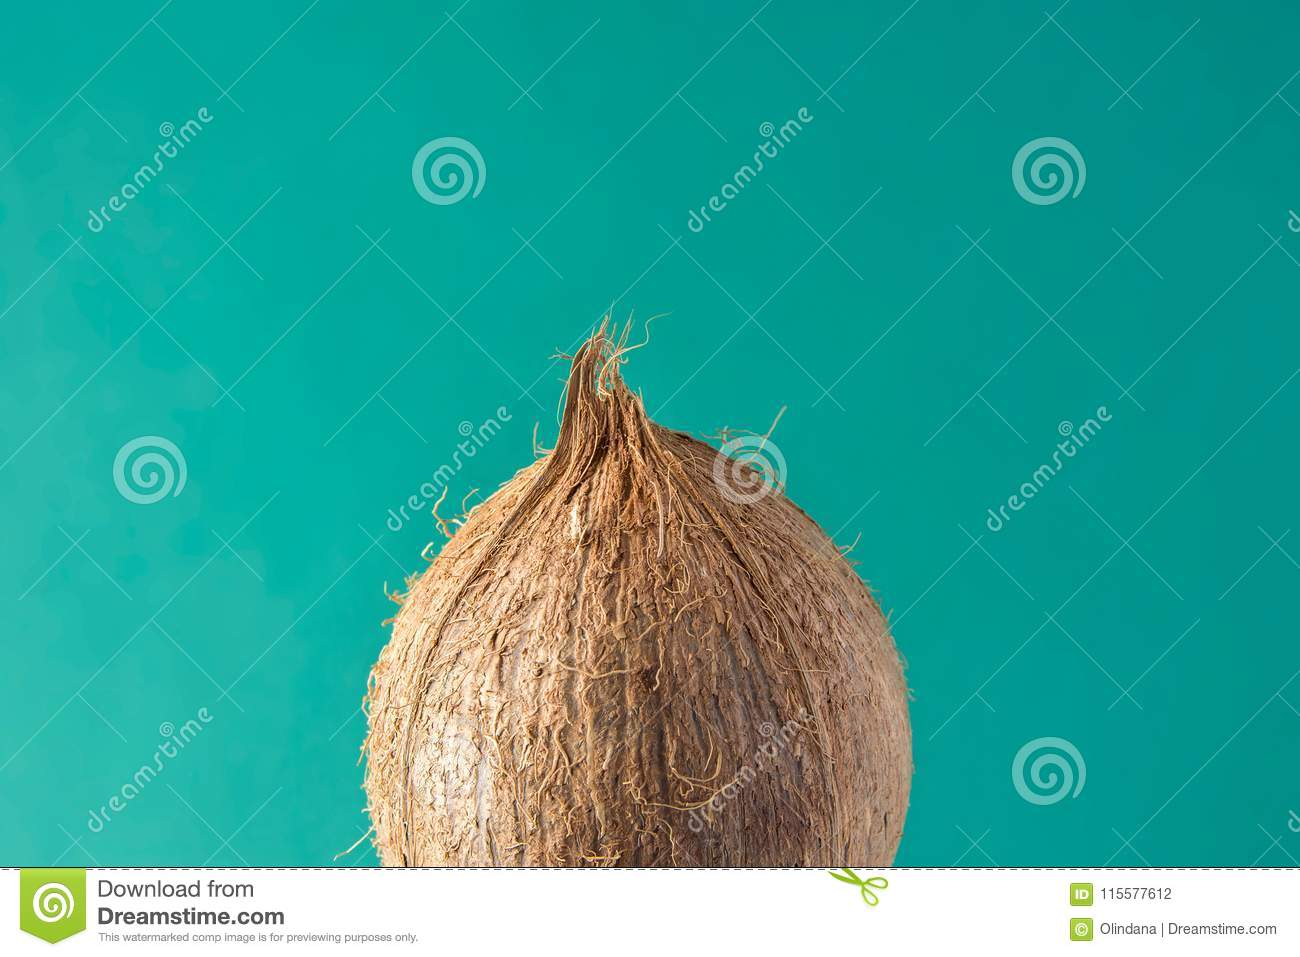 Tropical Background Ripe Coconut on Green Backdrop. Healthy Food Lifestyle Vitamins Summer Travel Vacation Concept